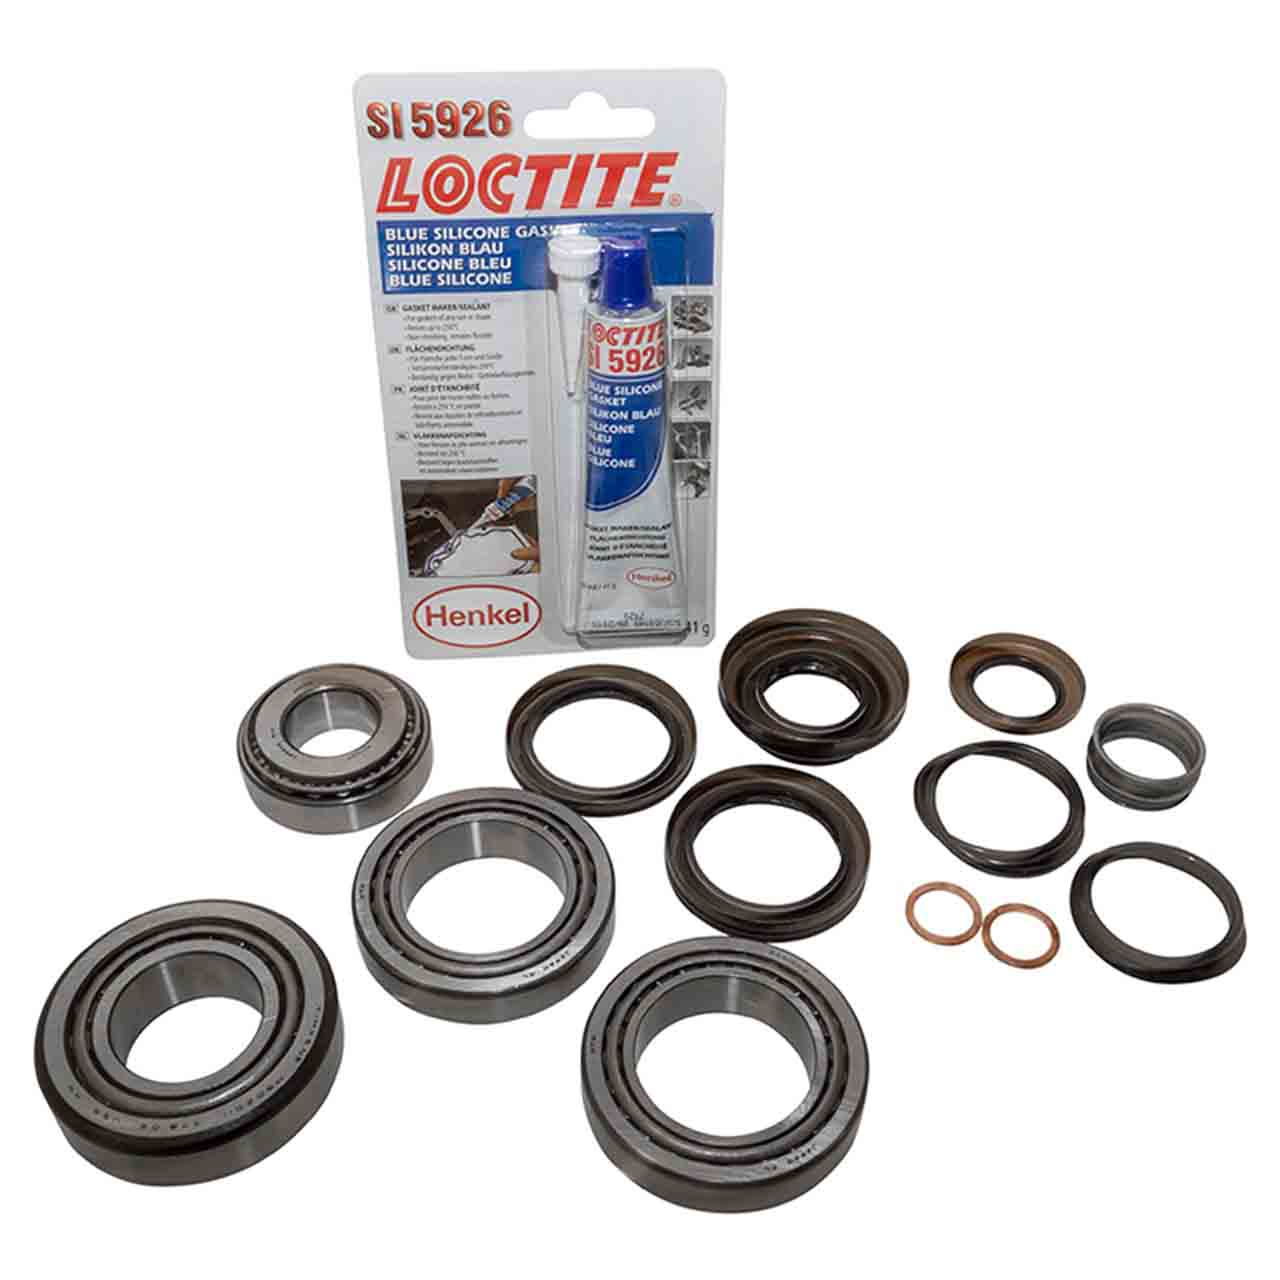 Freelander 2 Kit Cuscinetti Differenziali Anteriori GR2-05435